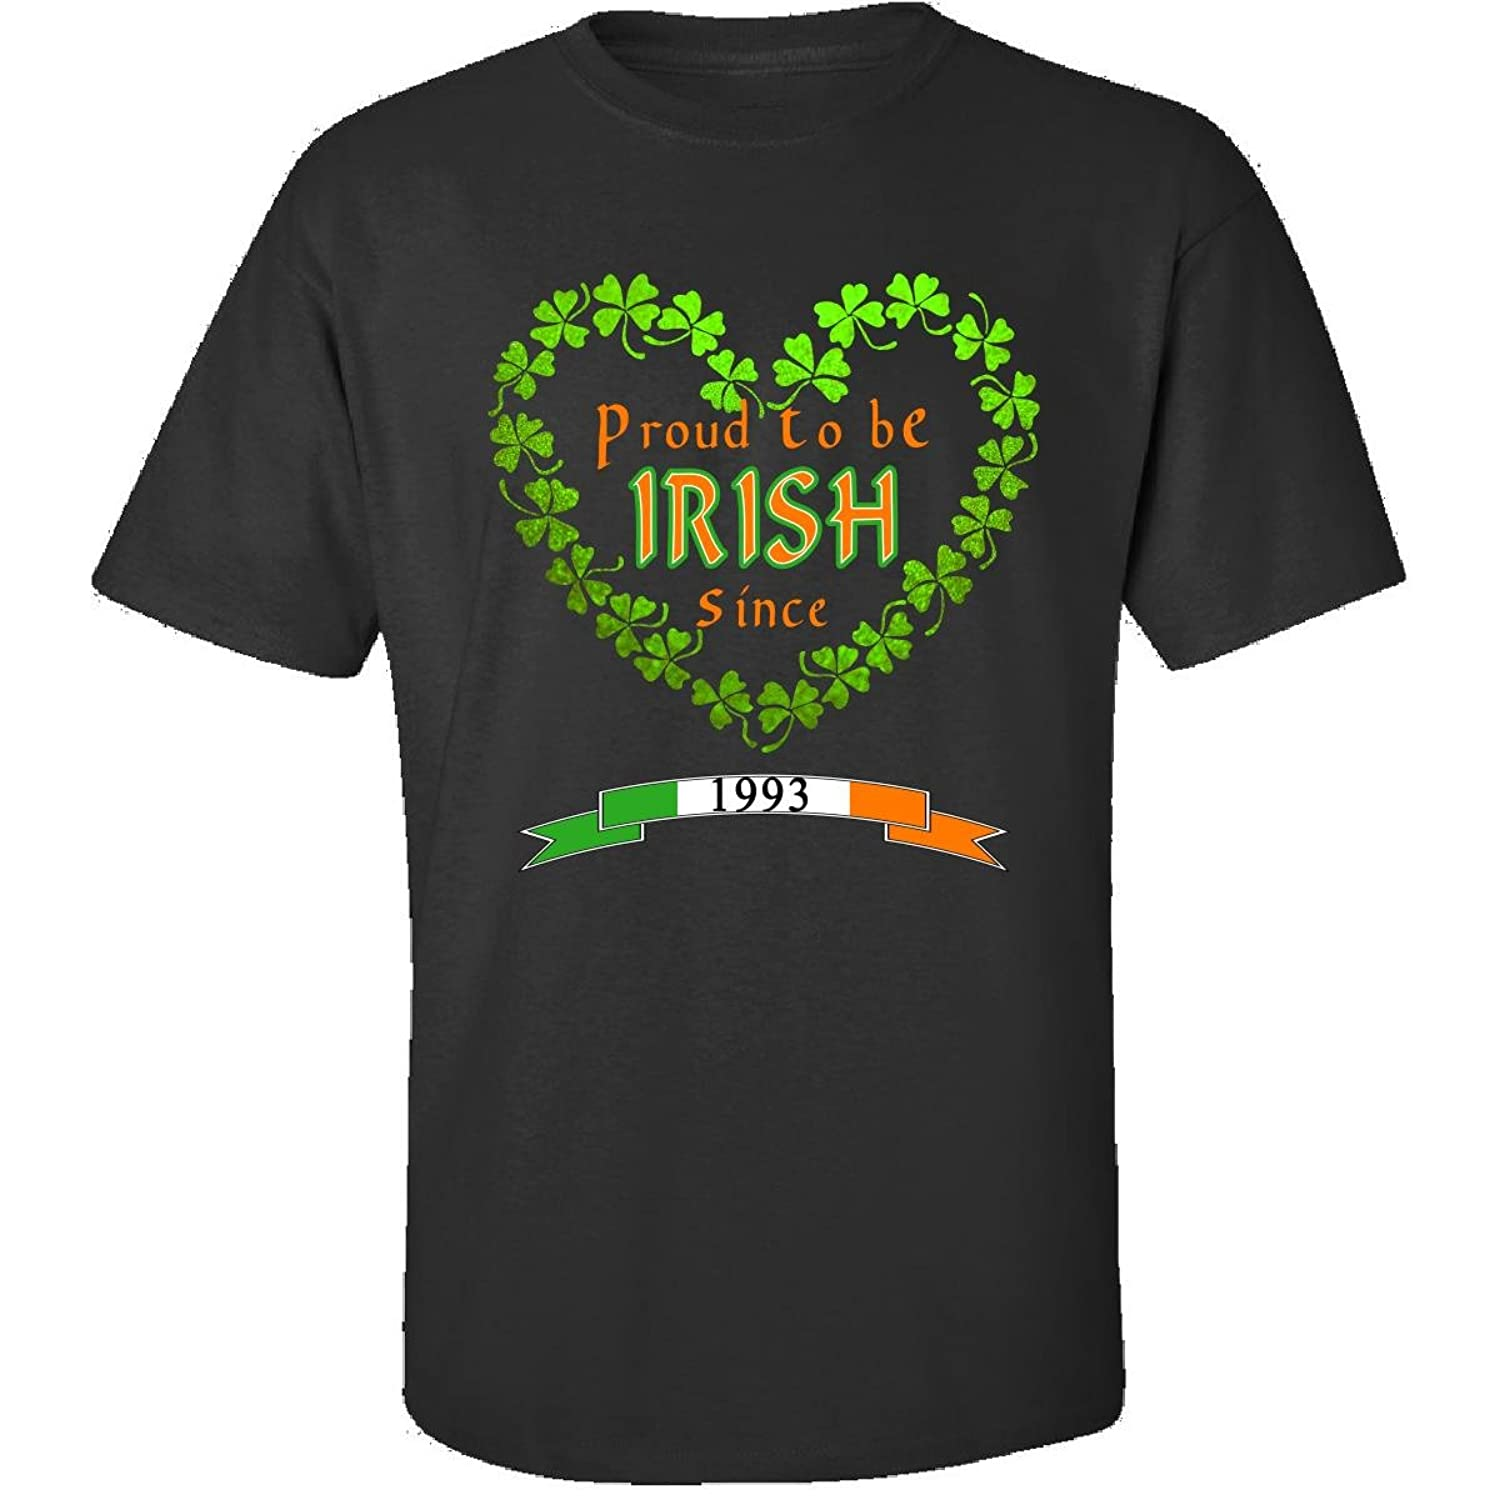 Proud To Be Irish Since 1993 Cool Birthday Gift For Friends - Adult Shirt